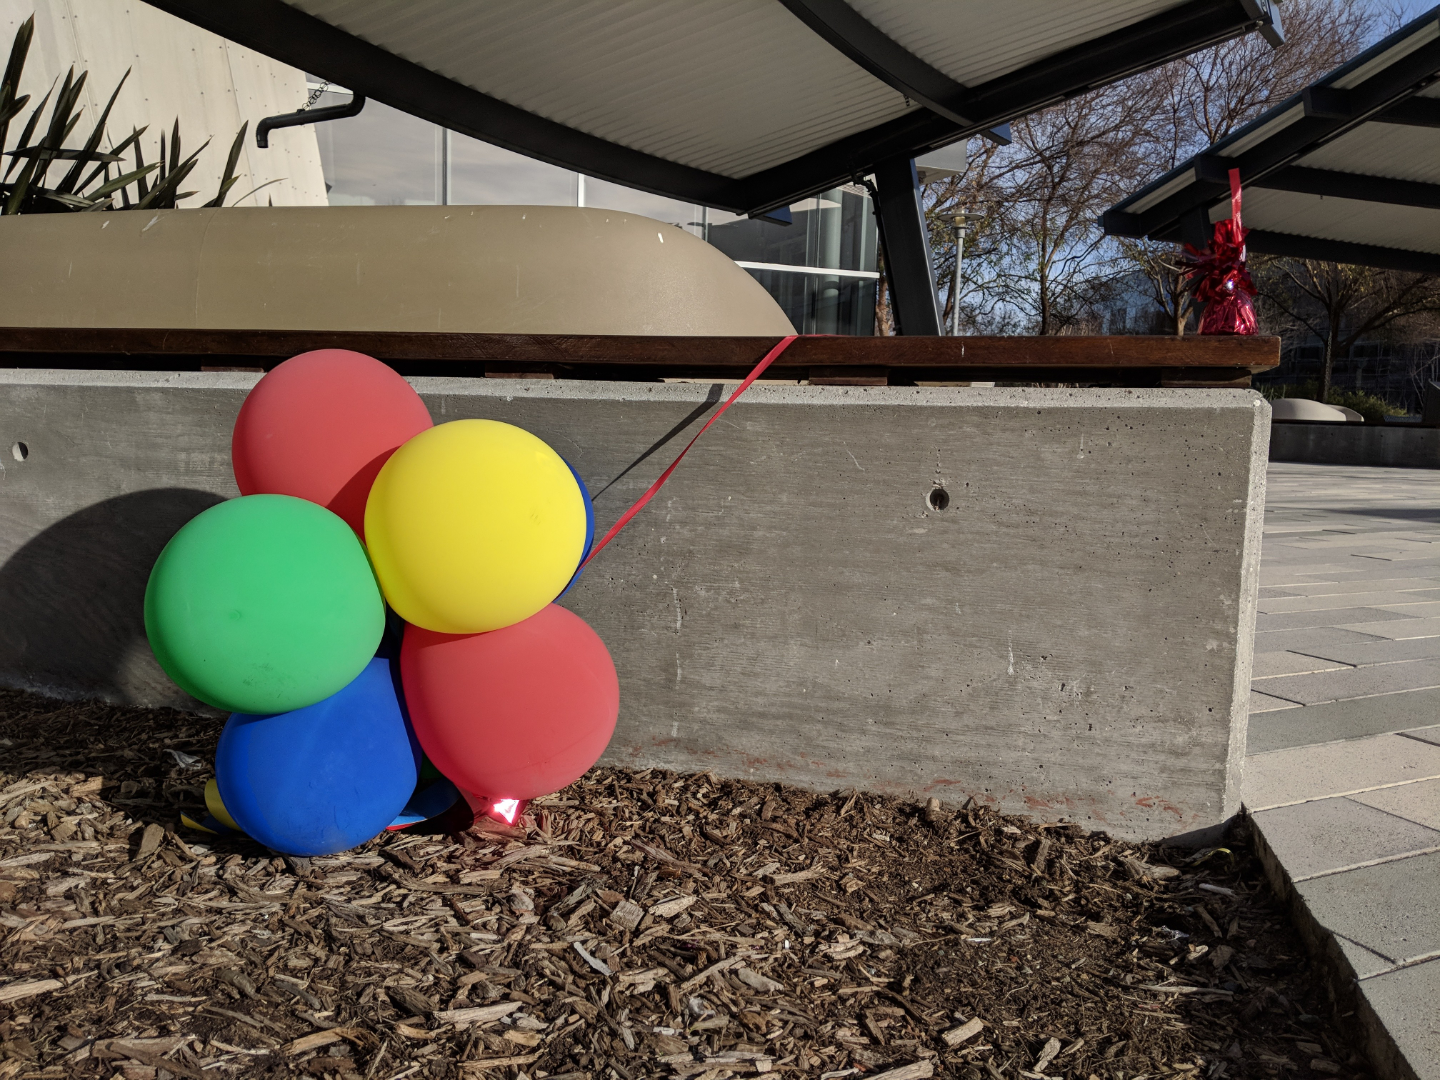 large round balloons outside on floor in front of a concrete wall